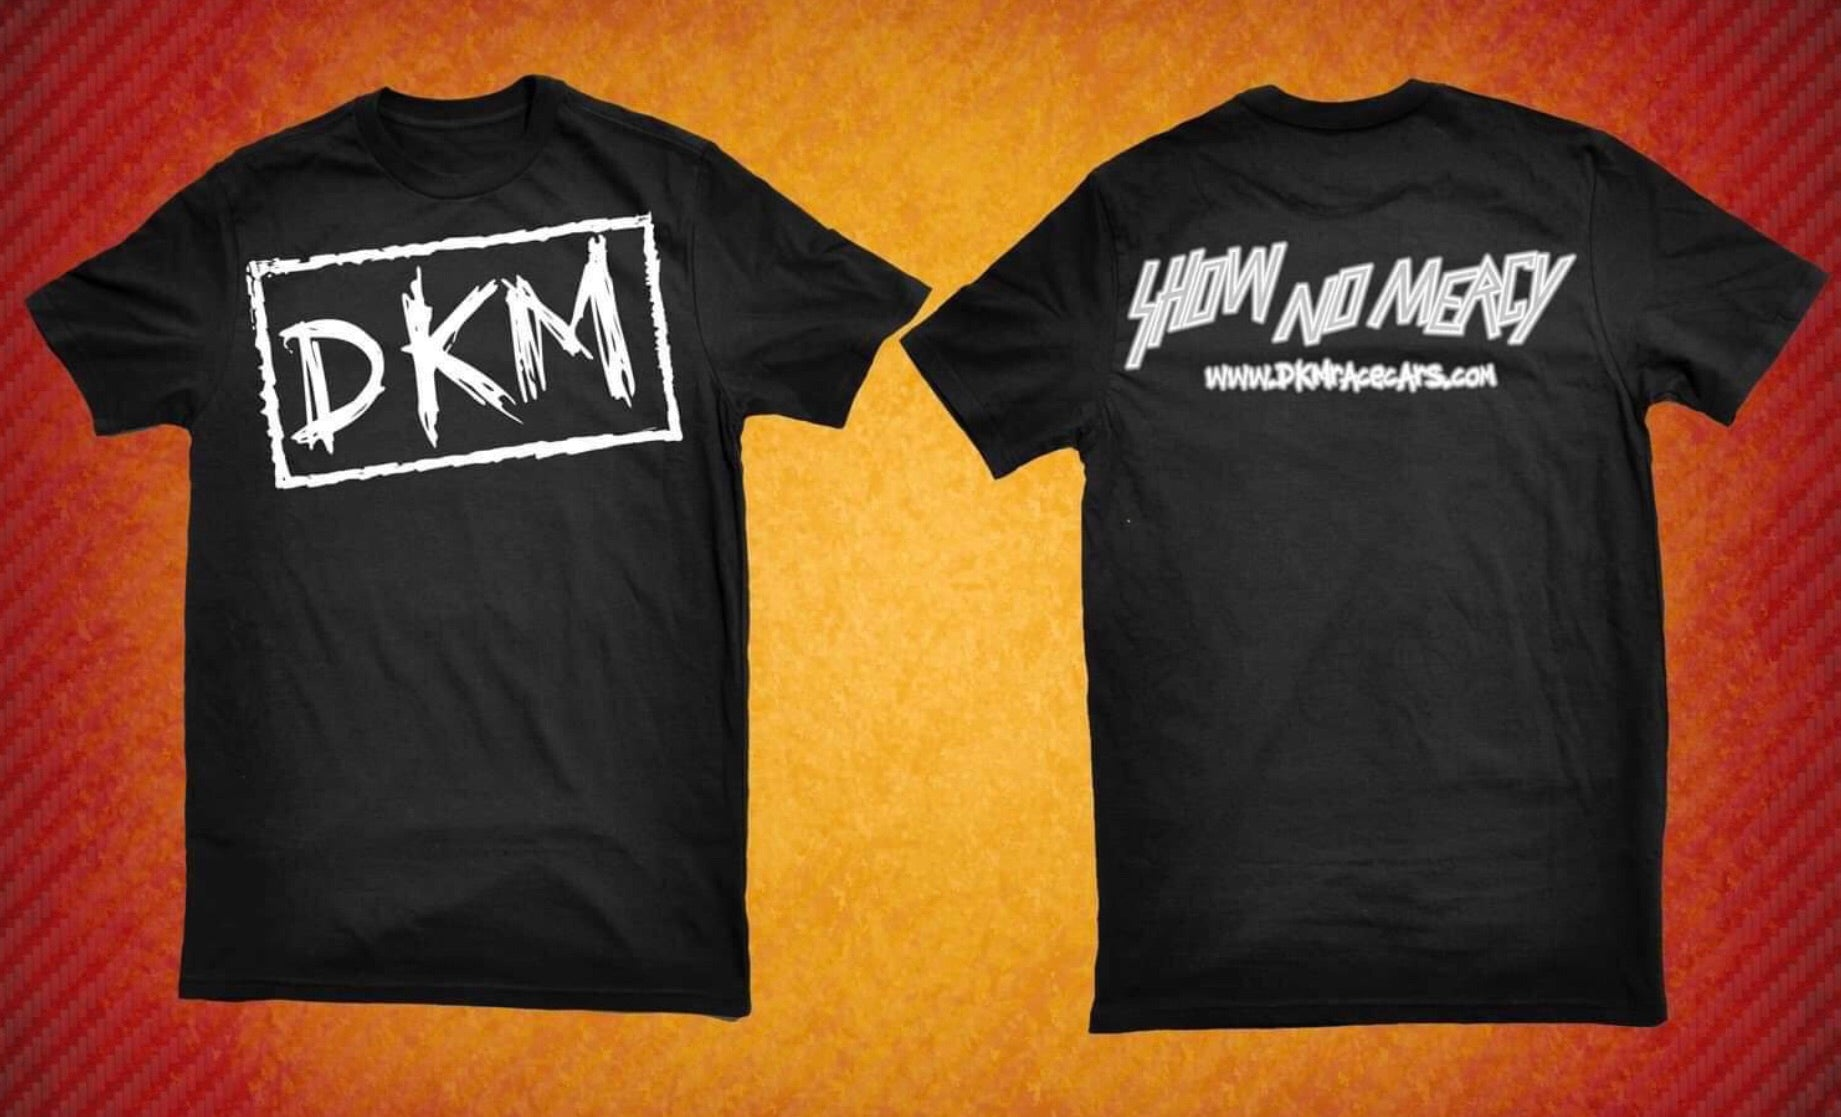 DKM SHOW NO MERCY SHIRT